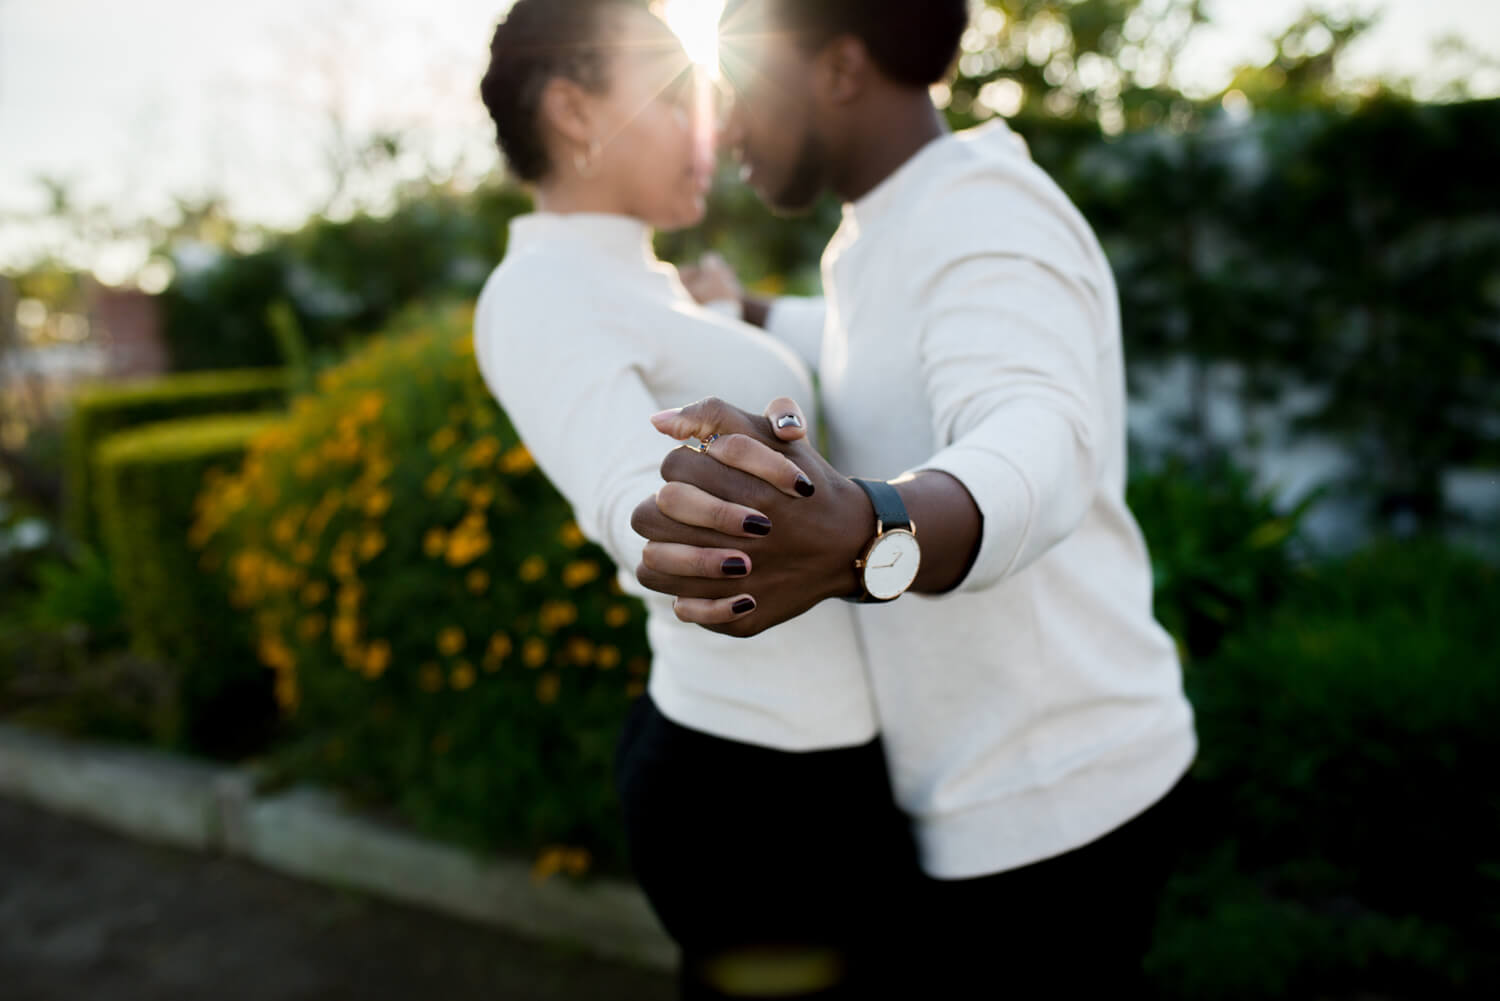 Outside engagement session. Fiances hugging outside with ring showing. Engagement photo fiance holding hands with ring on. Fiances laughing in the street engagement shoot. Fiances looking into each others eyes. smiling at sunset.